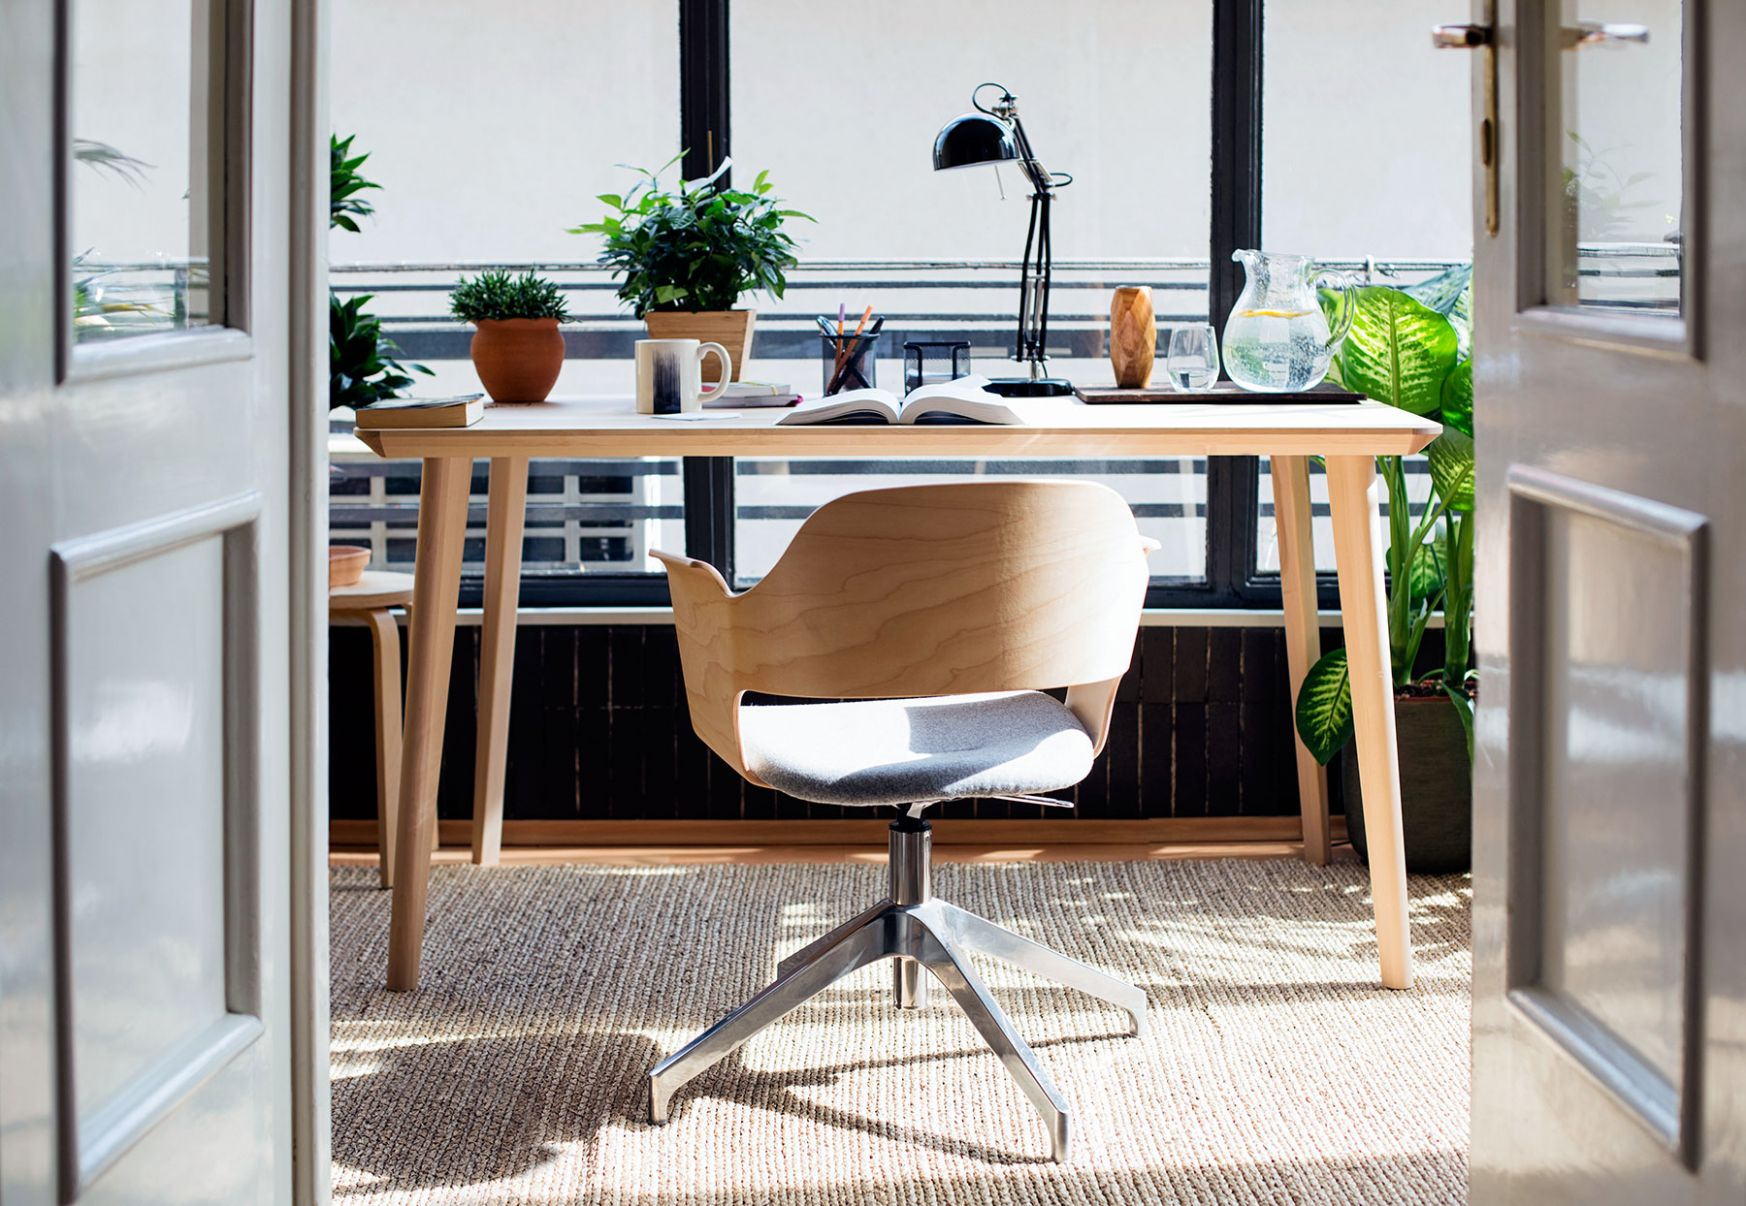 11 Home Office Ideas That Will Make You Want to Work All Day ..